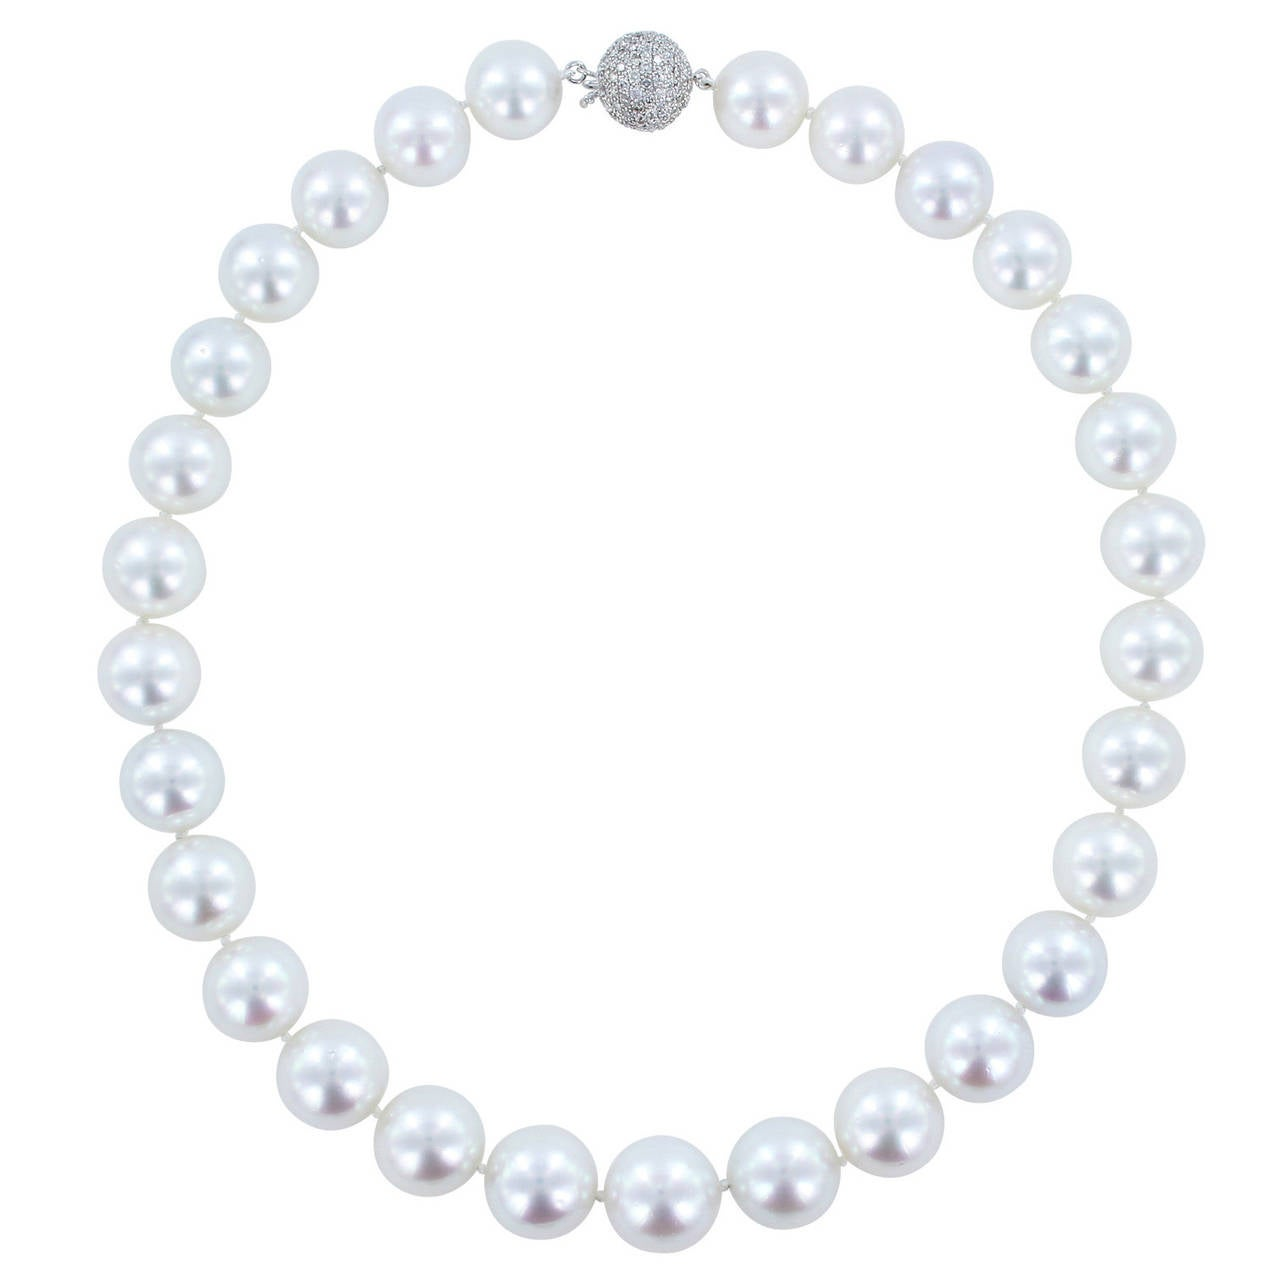 13-14 Millimeter South Sea Pearl Necklace